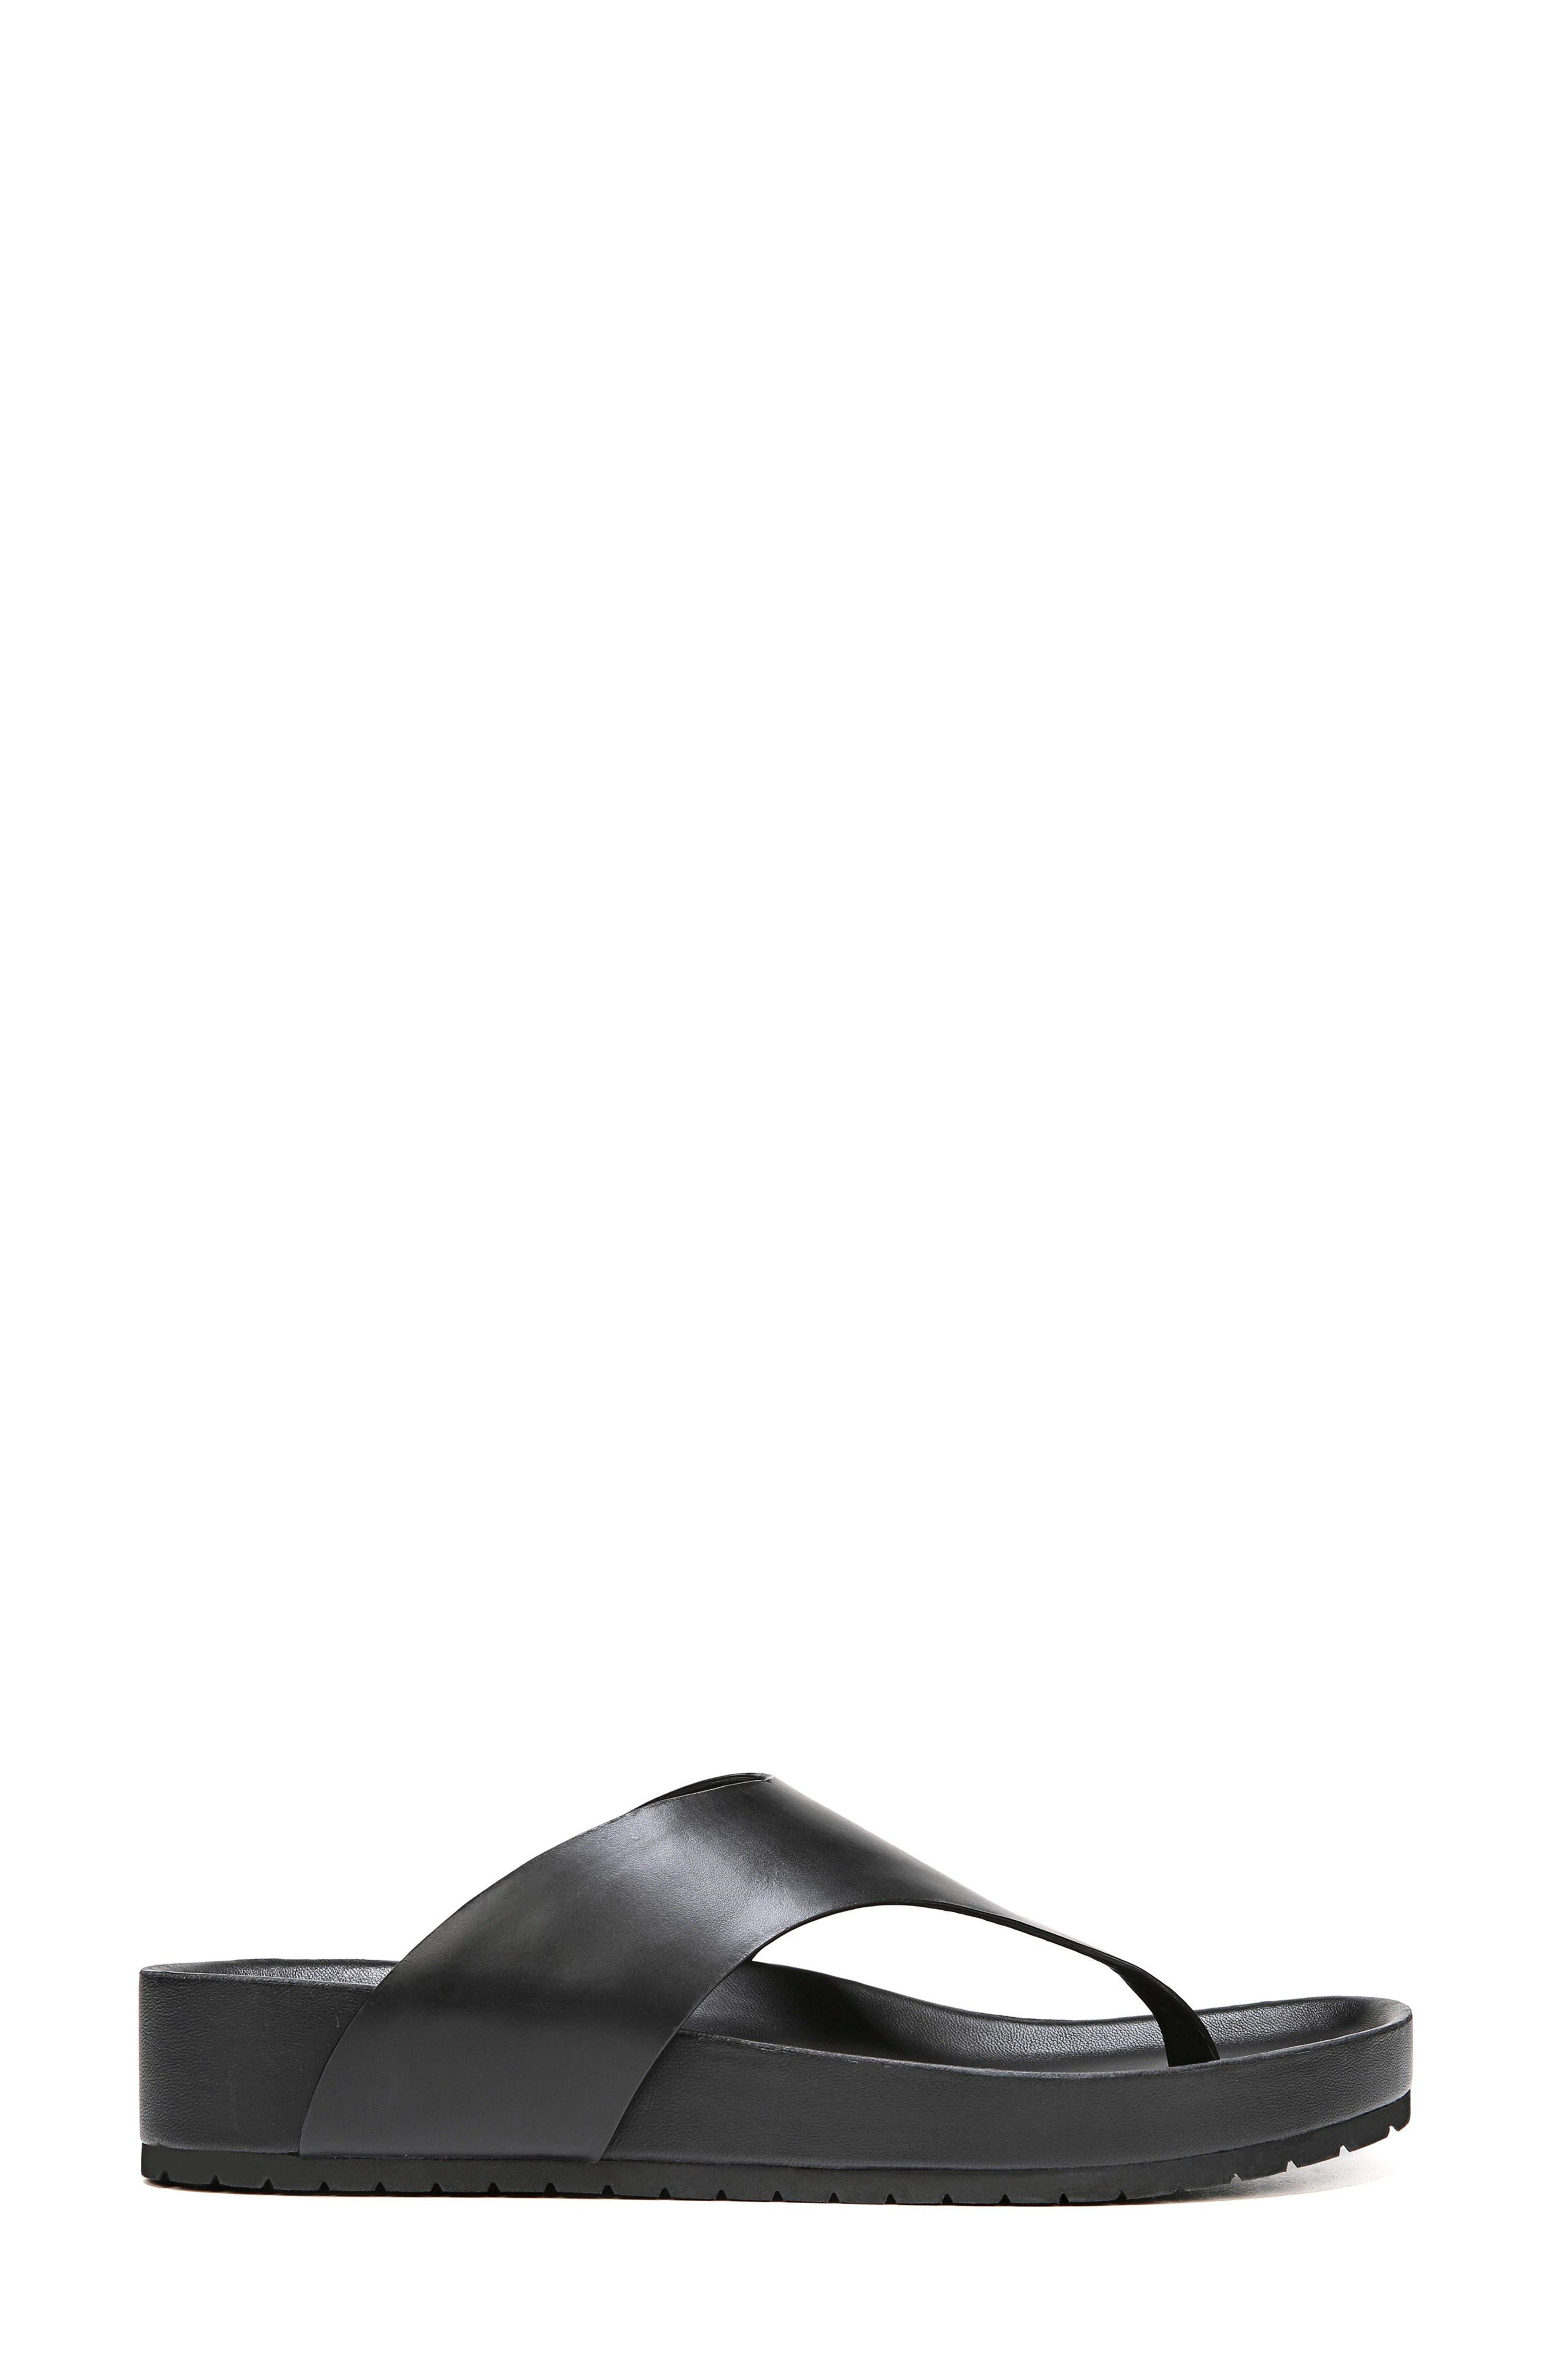 Padma Platform Sandal,                             Alternate thumbnail 3, color,                             BLACK